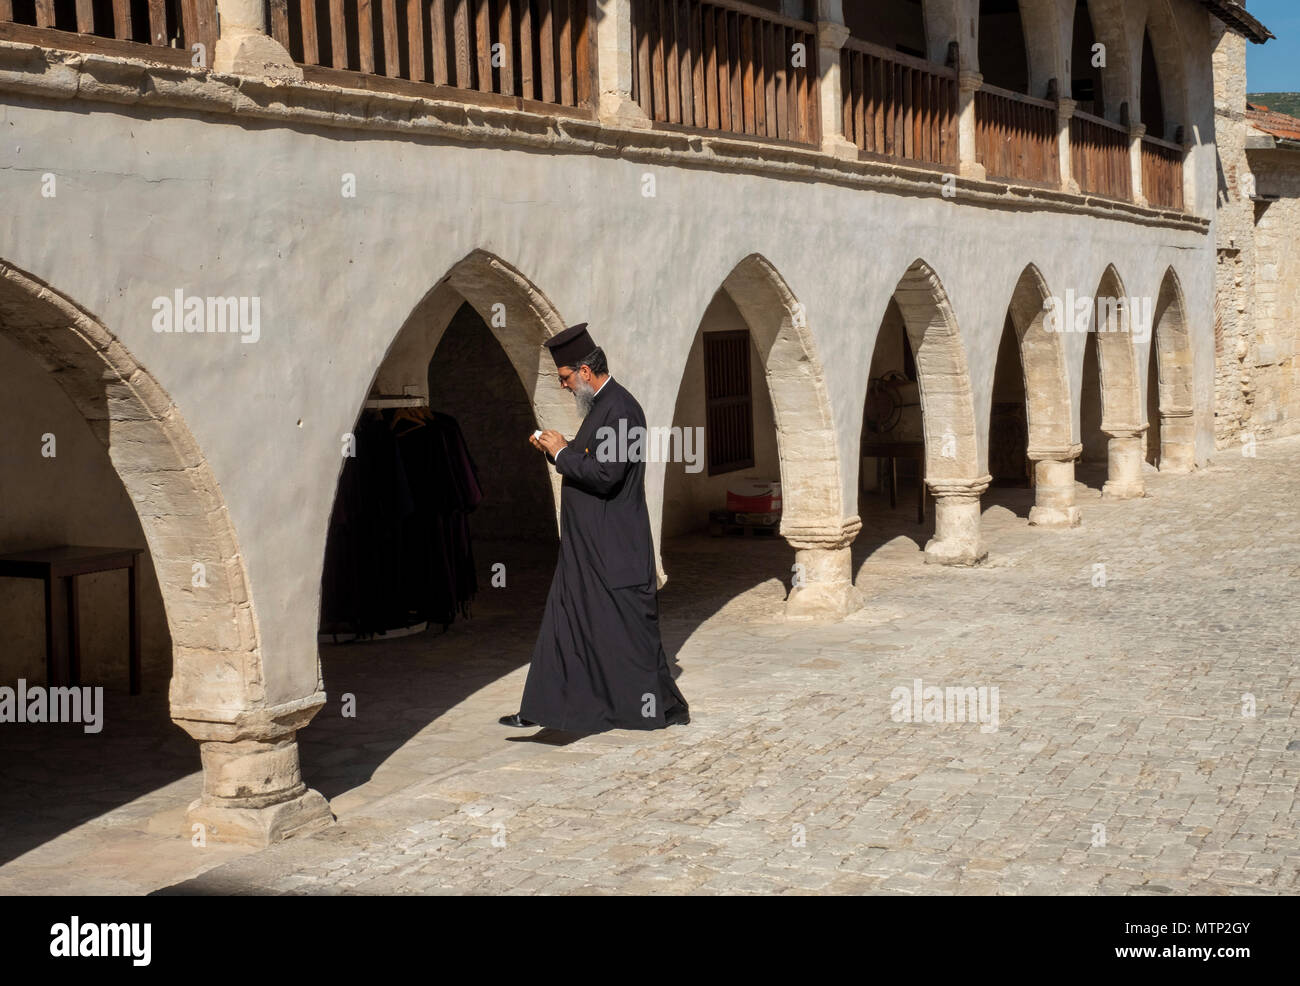 A priest walking across a courtyard at the Monastery of the Holy Cross, Omodos village, Cyprus. - Stock Image